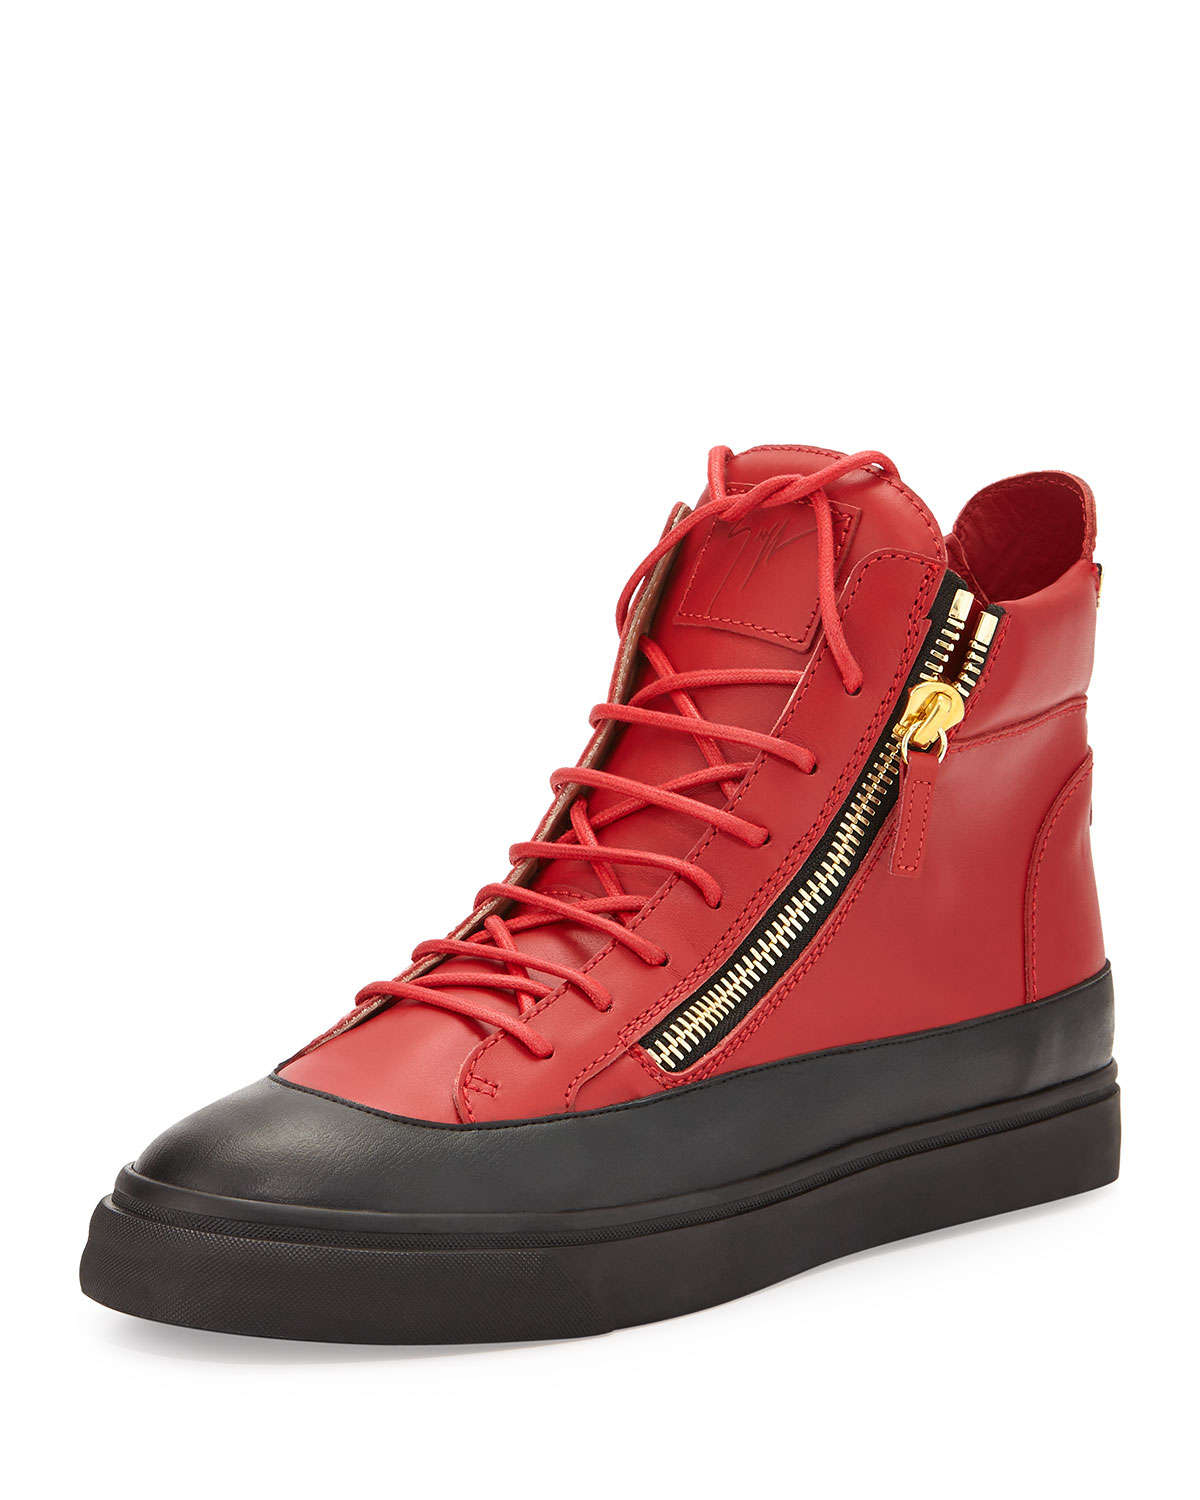 giuseppe zanotti mens zip leather high top sneaker in red for men lyst. Black Bedroom Furniture Sets. Home Design Ideas